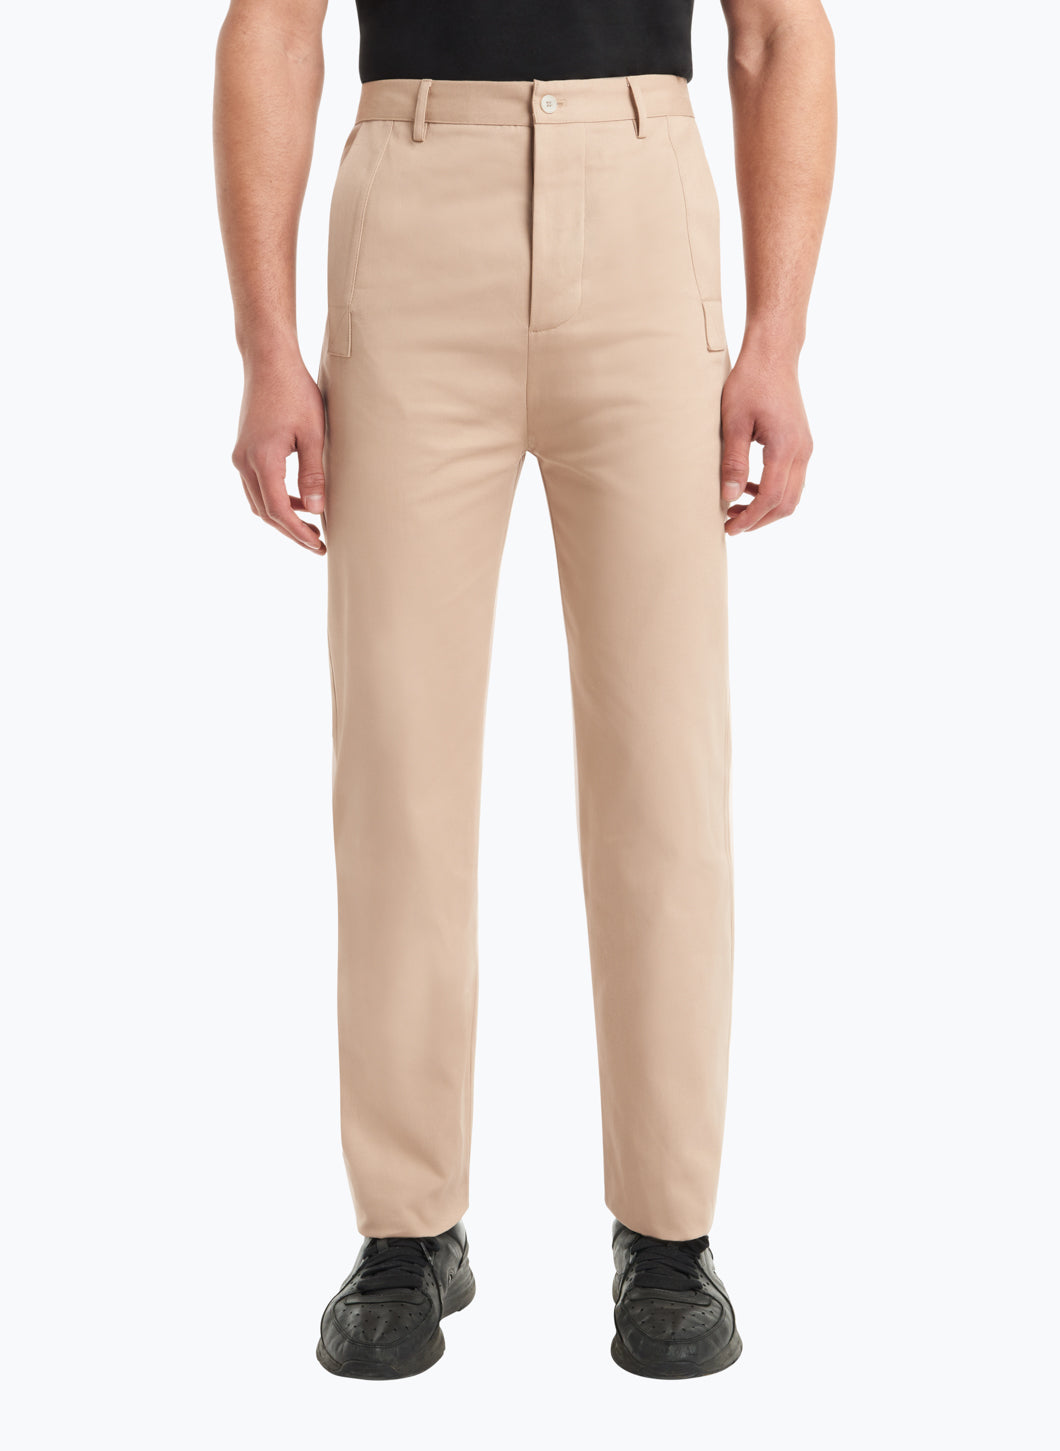 Pants with Reinforced Pockets in Beige Gabardine